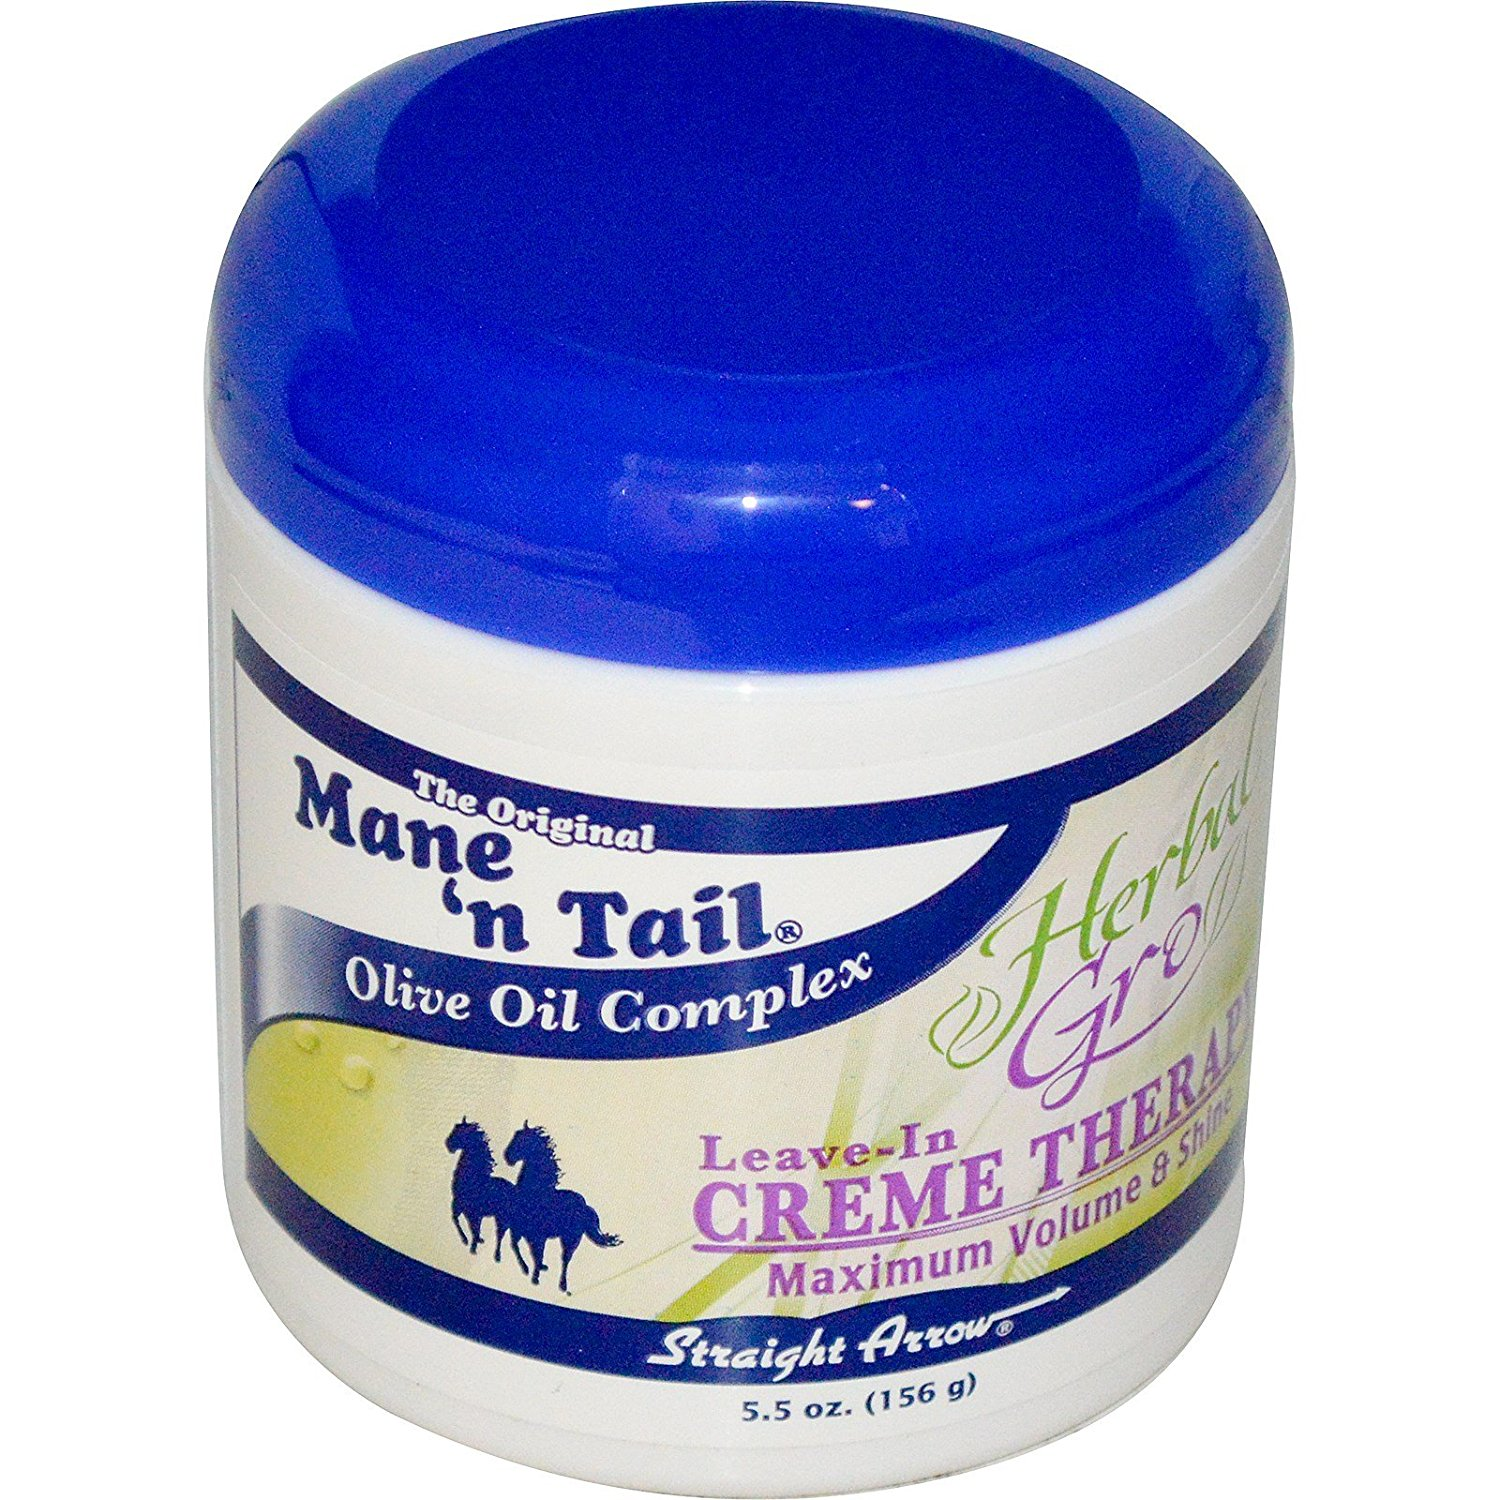 Mane 'n Tail, Herbal Gro, Leave-In Creme Therapy, 5.5 oz (156 g) - 3PC